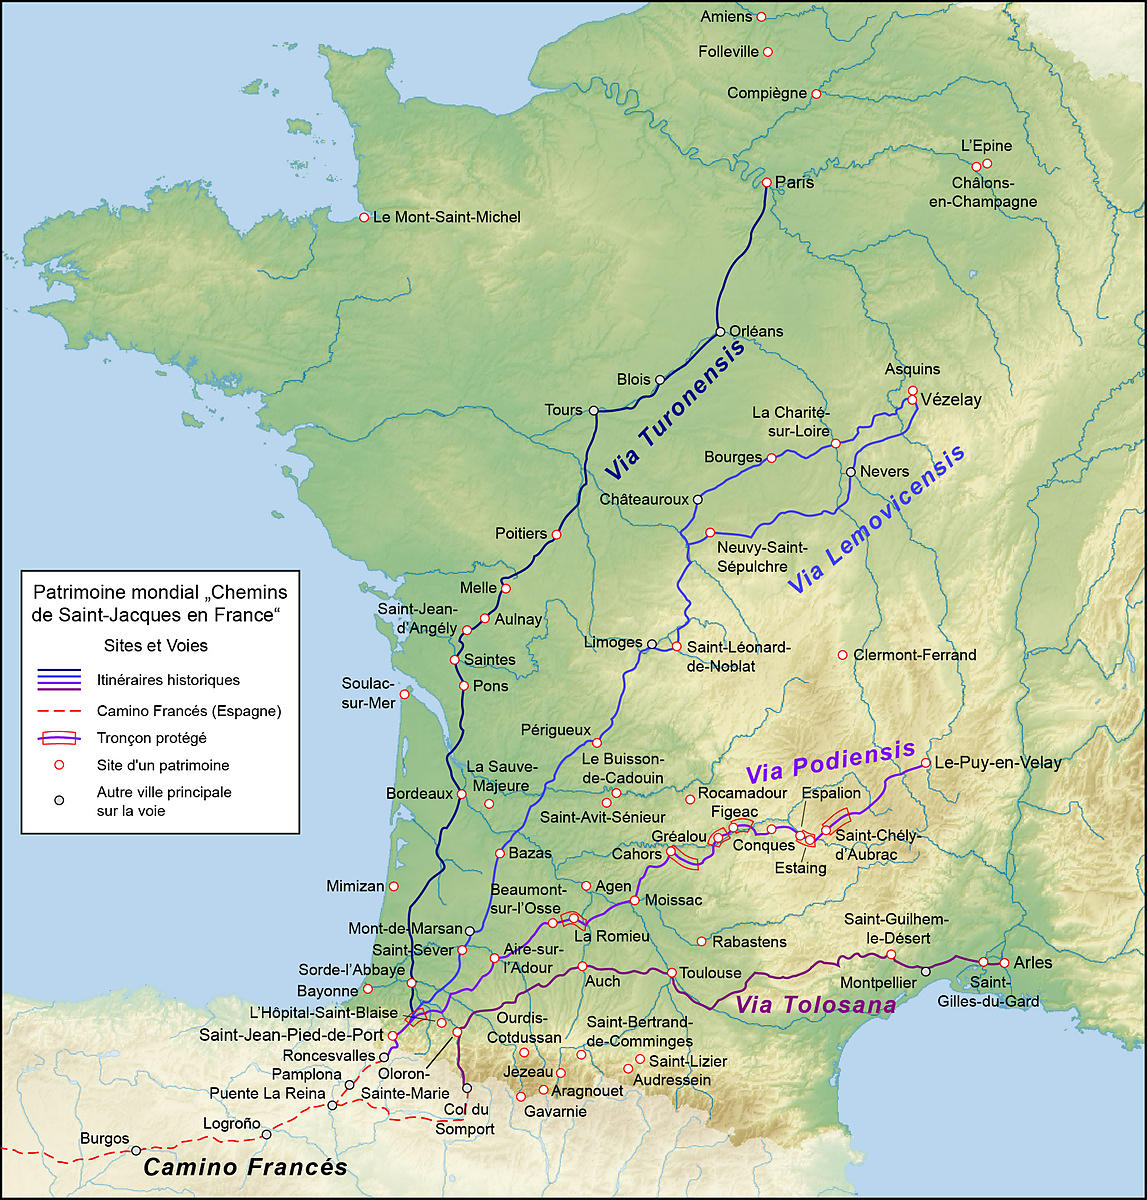 Les chemins de Saint-Jacques en France